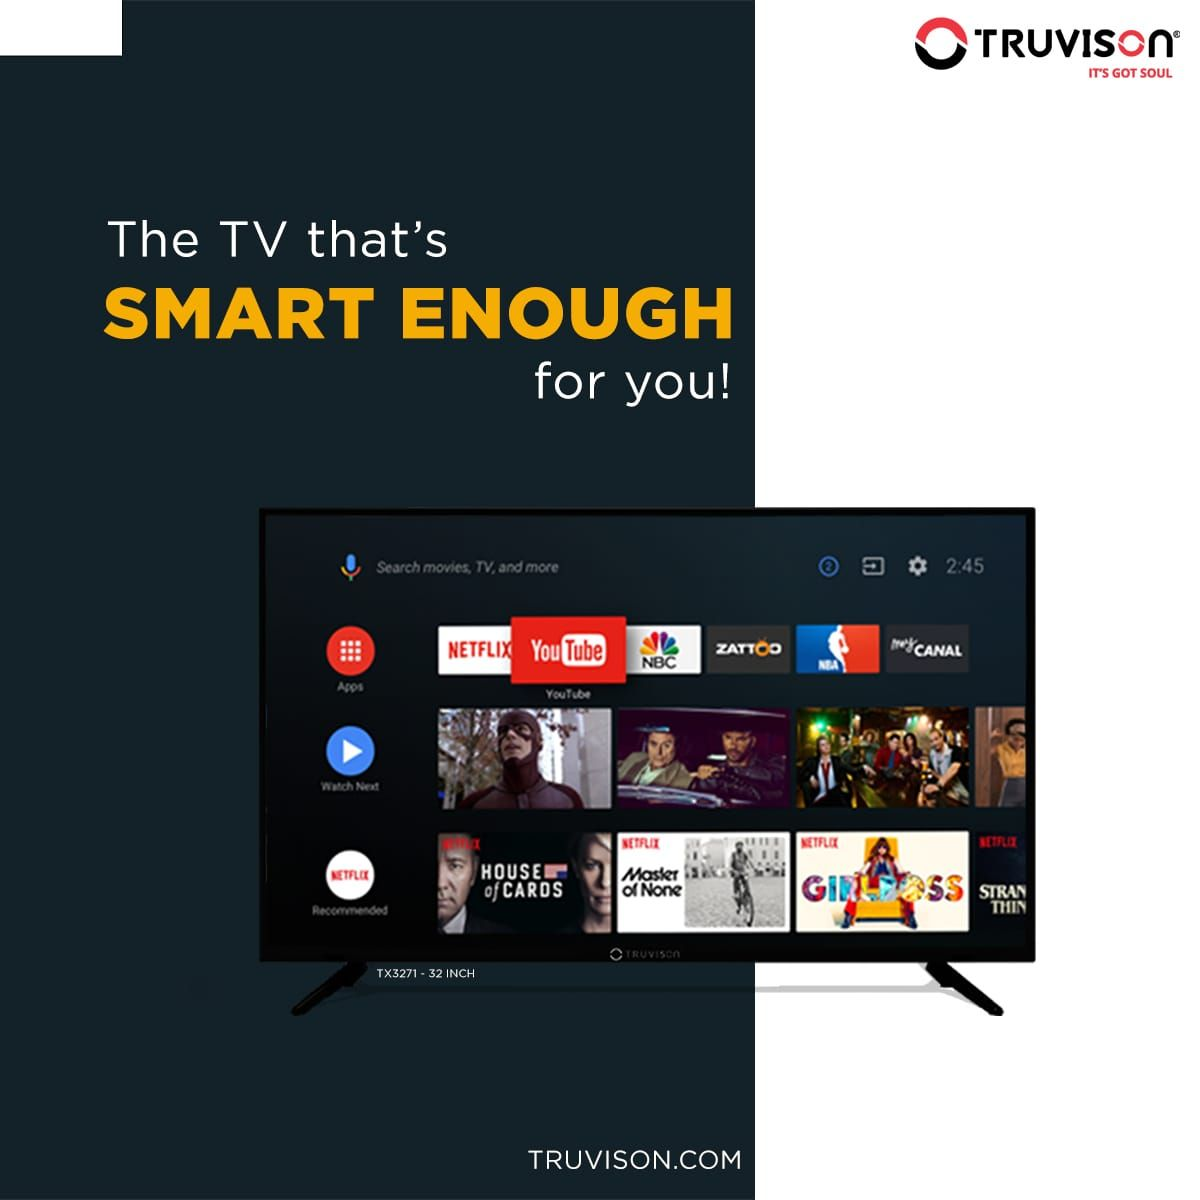 Its time you find a TV to match your demands, with mesmerizing display panels and the android platform to power it we deliver you the best of both worlds.  #TV3271    #Truvison #TruPrice #Value #Quality #SmartTV #WednesdayWisdom #WednesdayThoughts